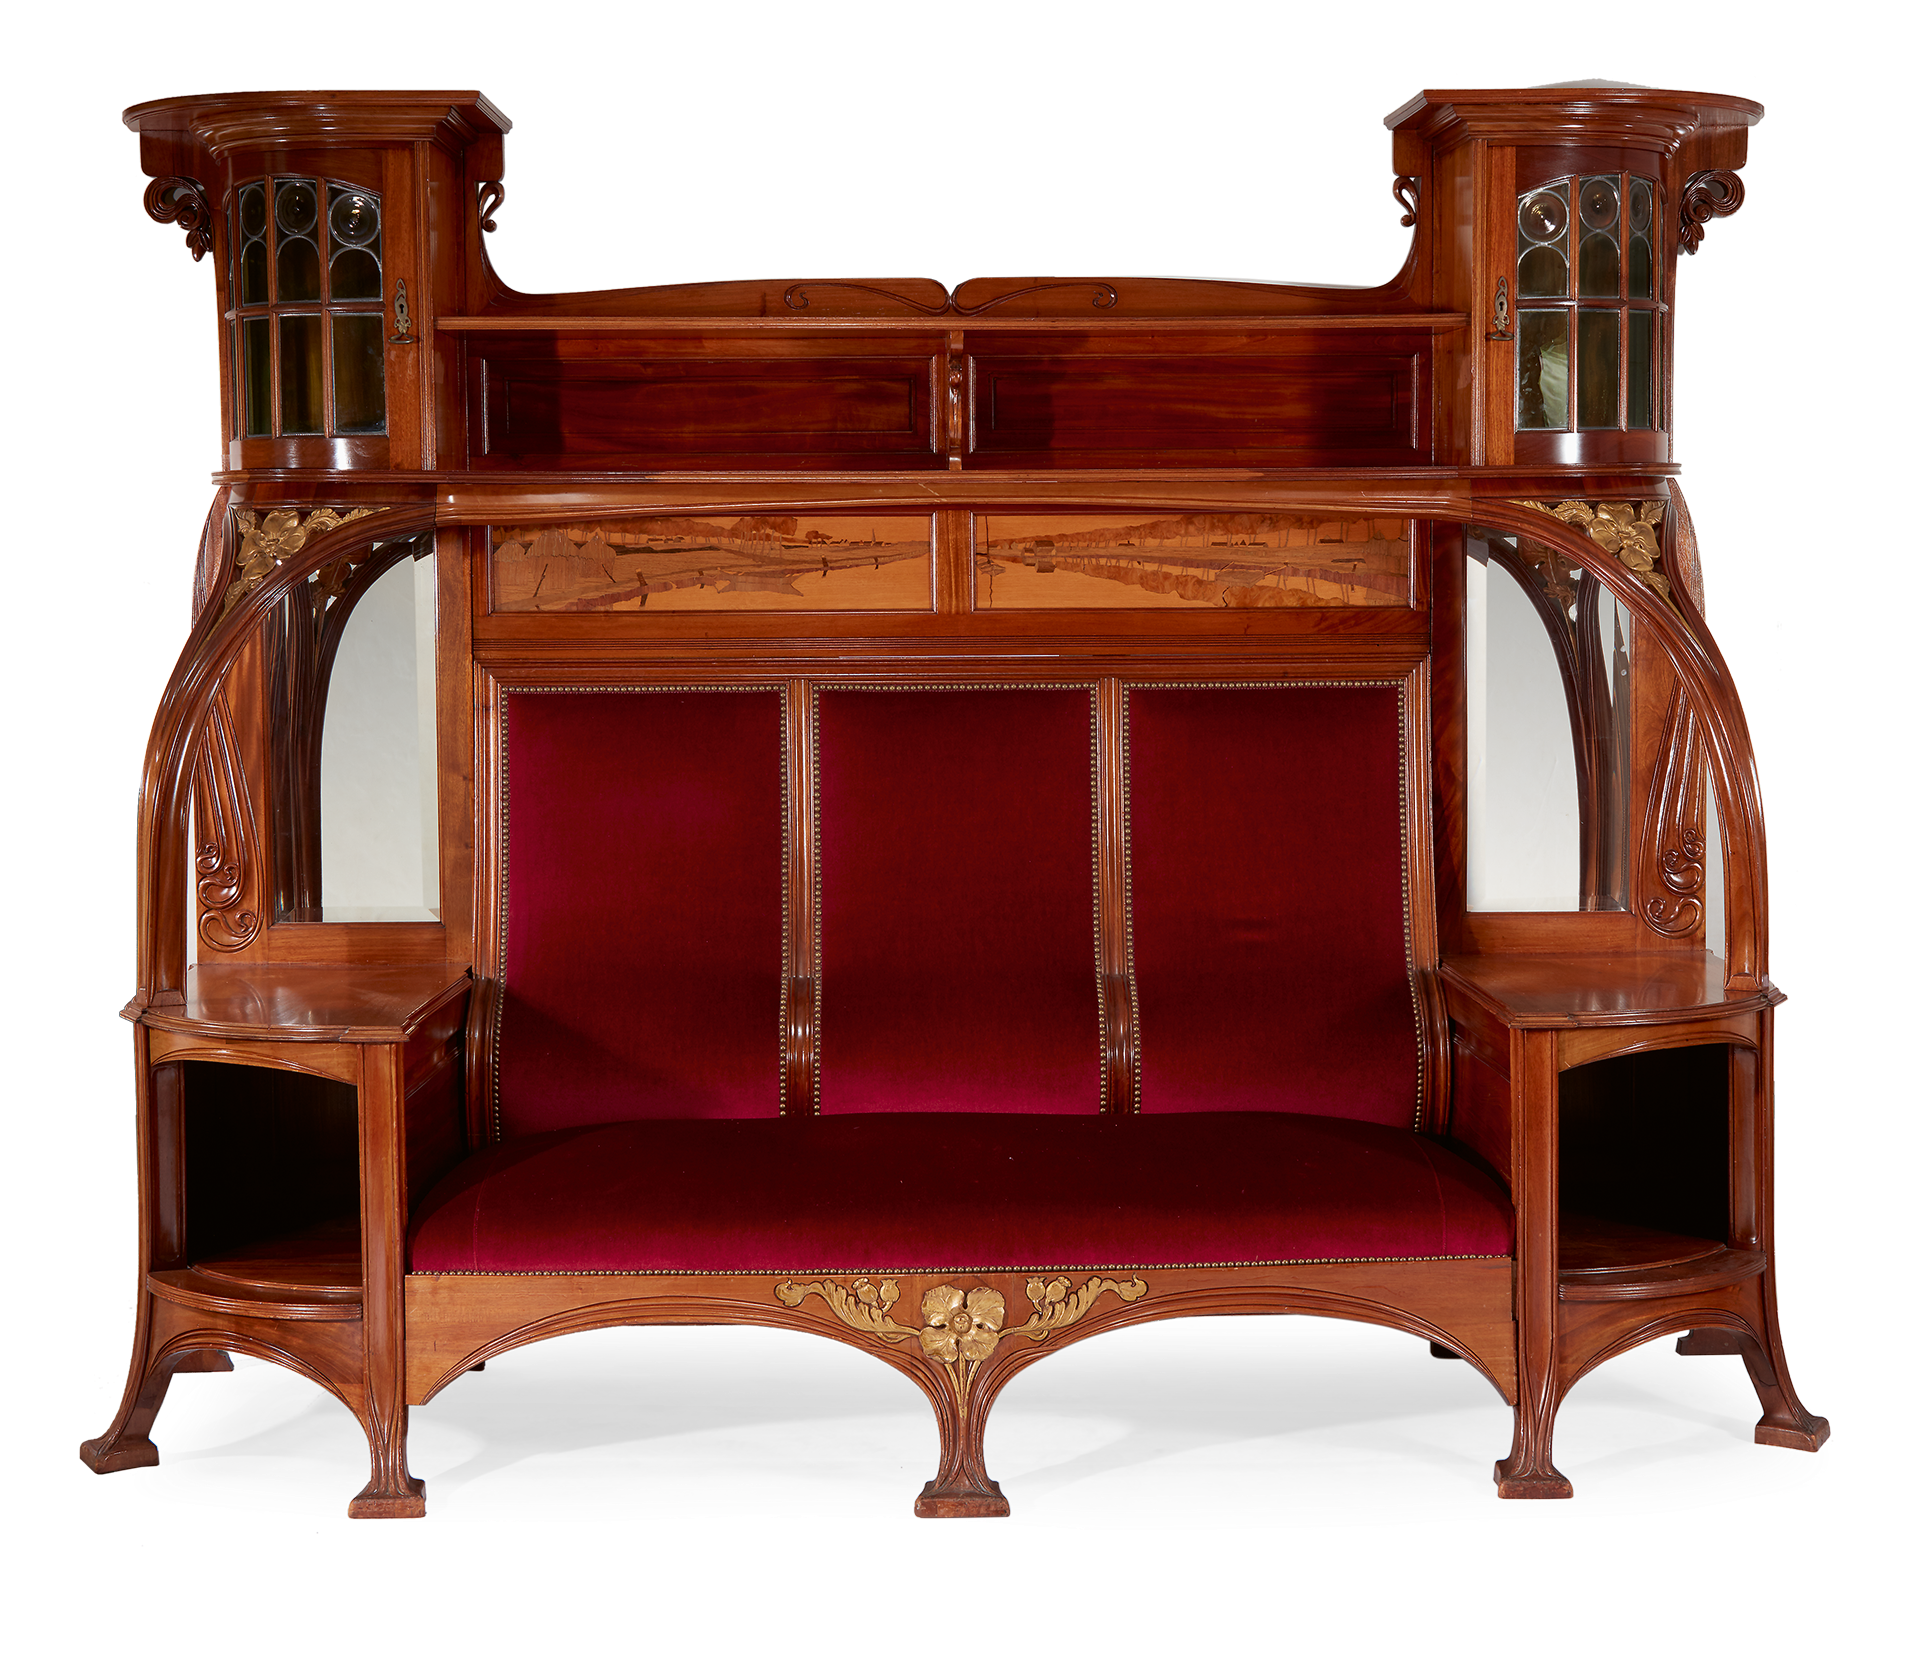 A ttributed to Eugène Vallin, Vitrine Cabinet and Sofa, France, circa 1905